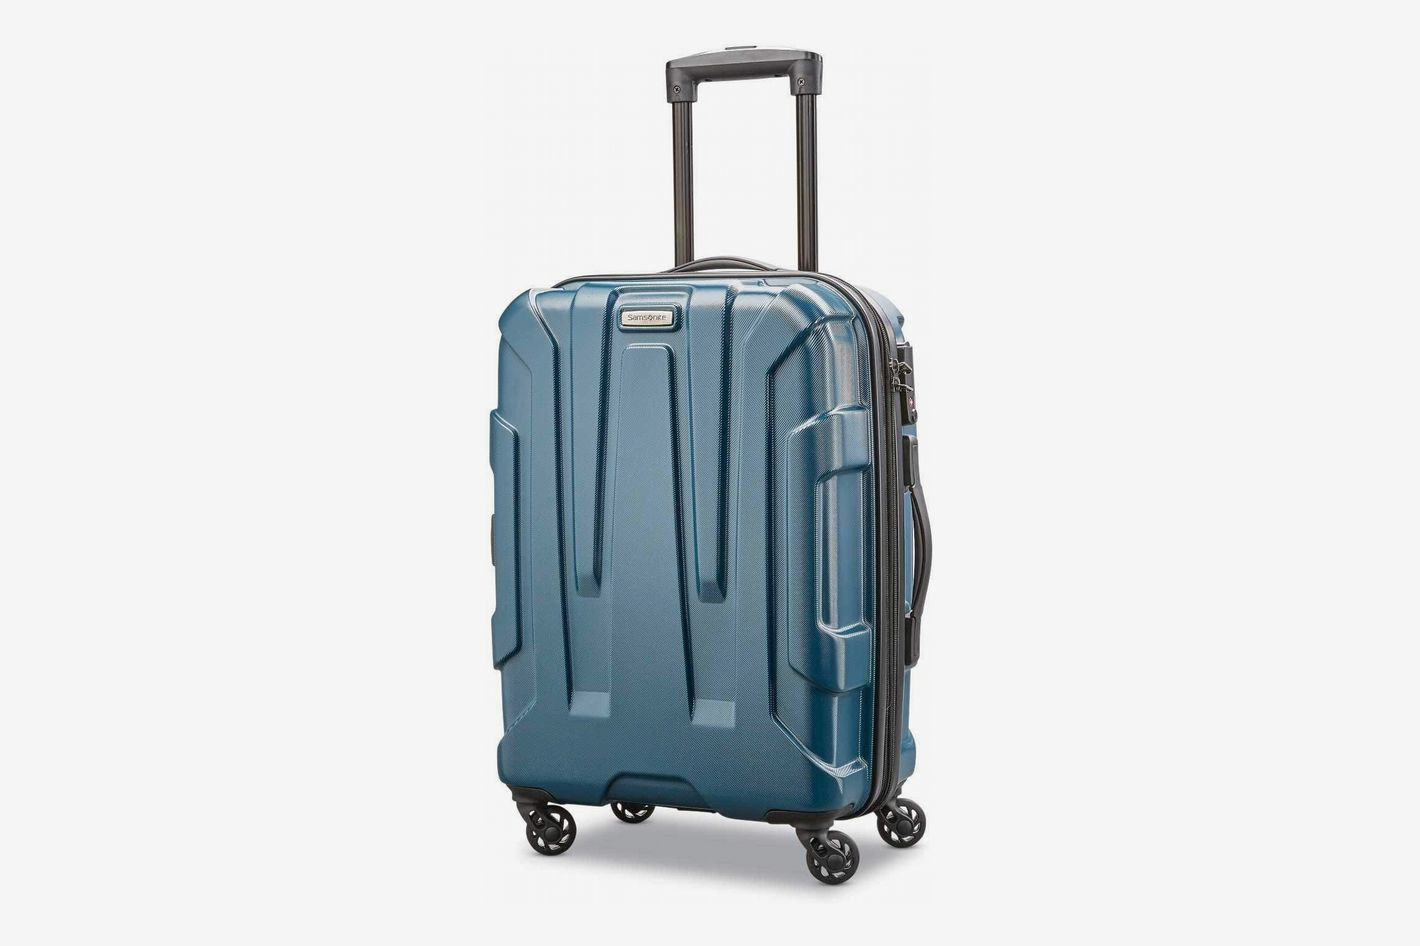 Samsonite Centric Expandable Hardside Carry On Luggage with Spinner Wheels 1ef6a0fbf816e